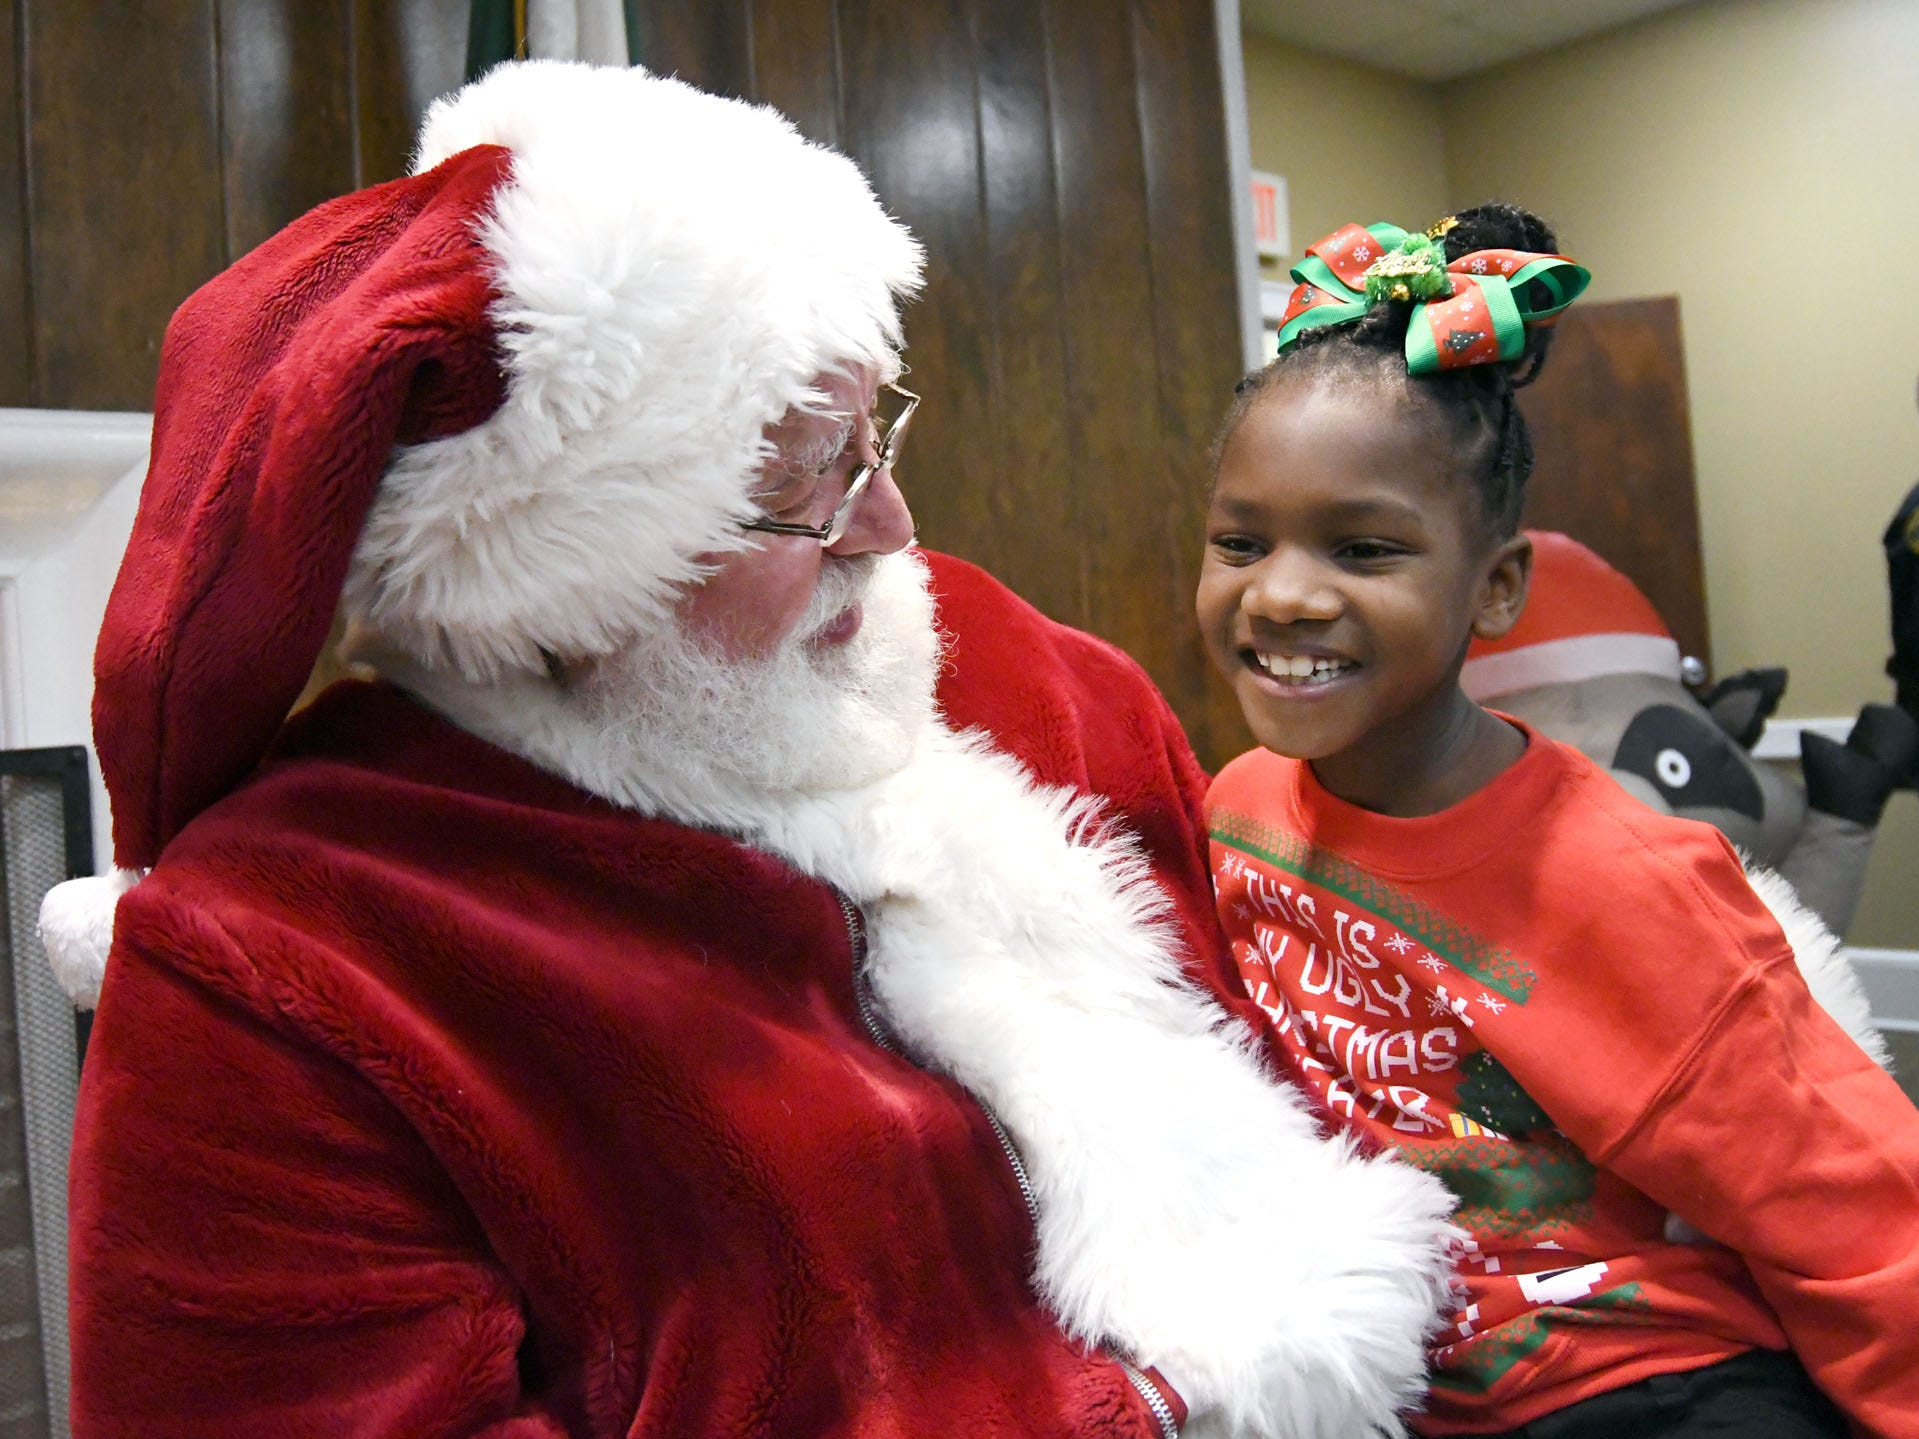 Kaitlyn Hawthorne talks to Santa Claus during the Hattiesburg Police Department's Victim Service Unit's Hearts of Hope Christmas party for victims affected by violent crimes at Jackie Sherrill Community Center on Thursday, December 20, 2018.